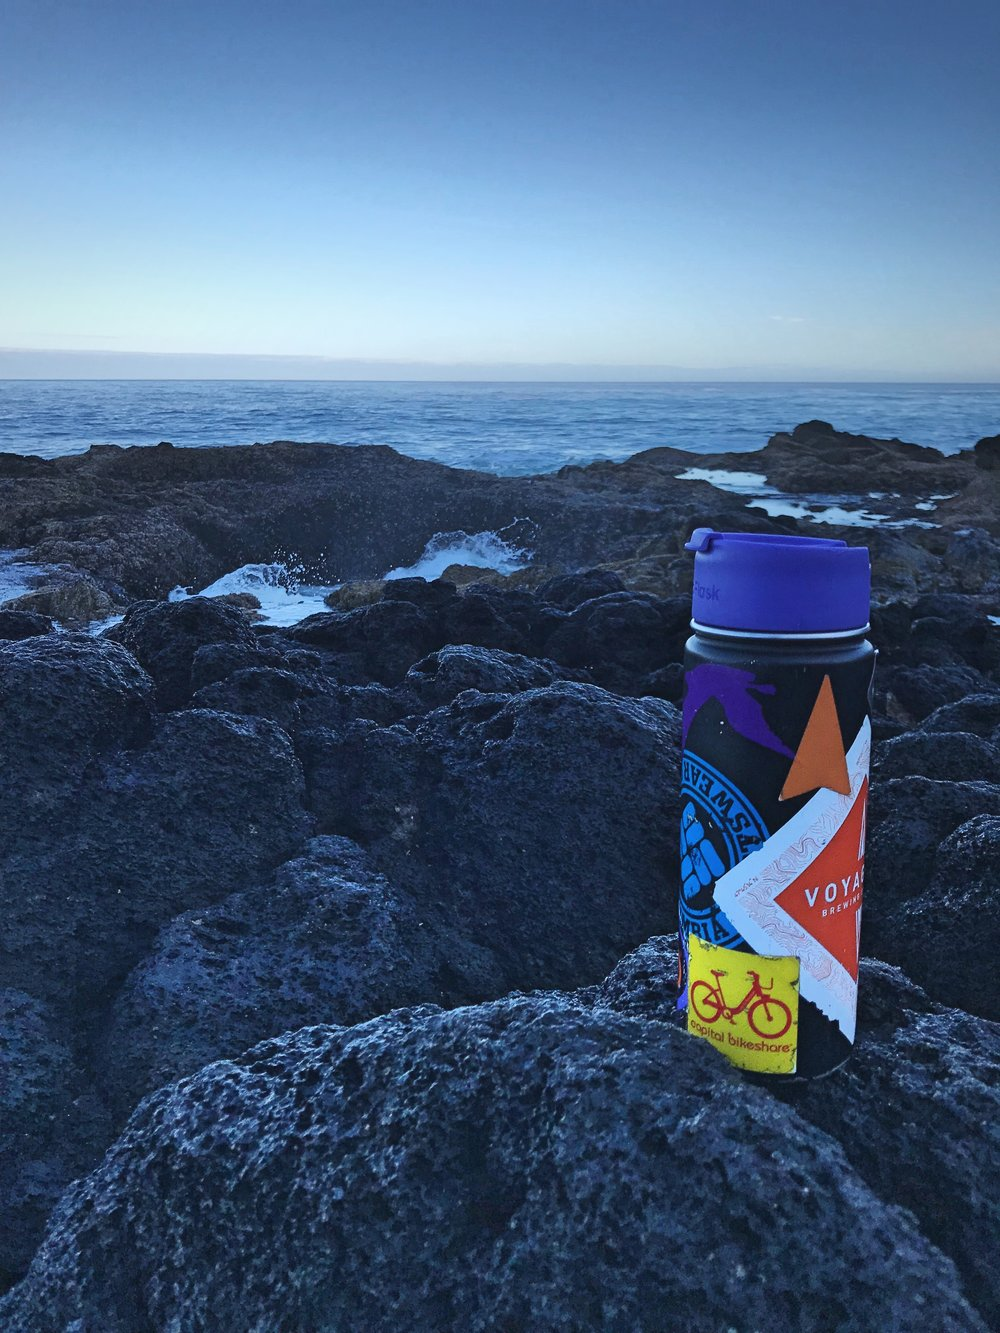 If we want to enjoy a chilly sunrise by the ocean, we can still have hot coffee.